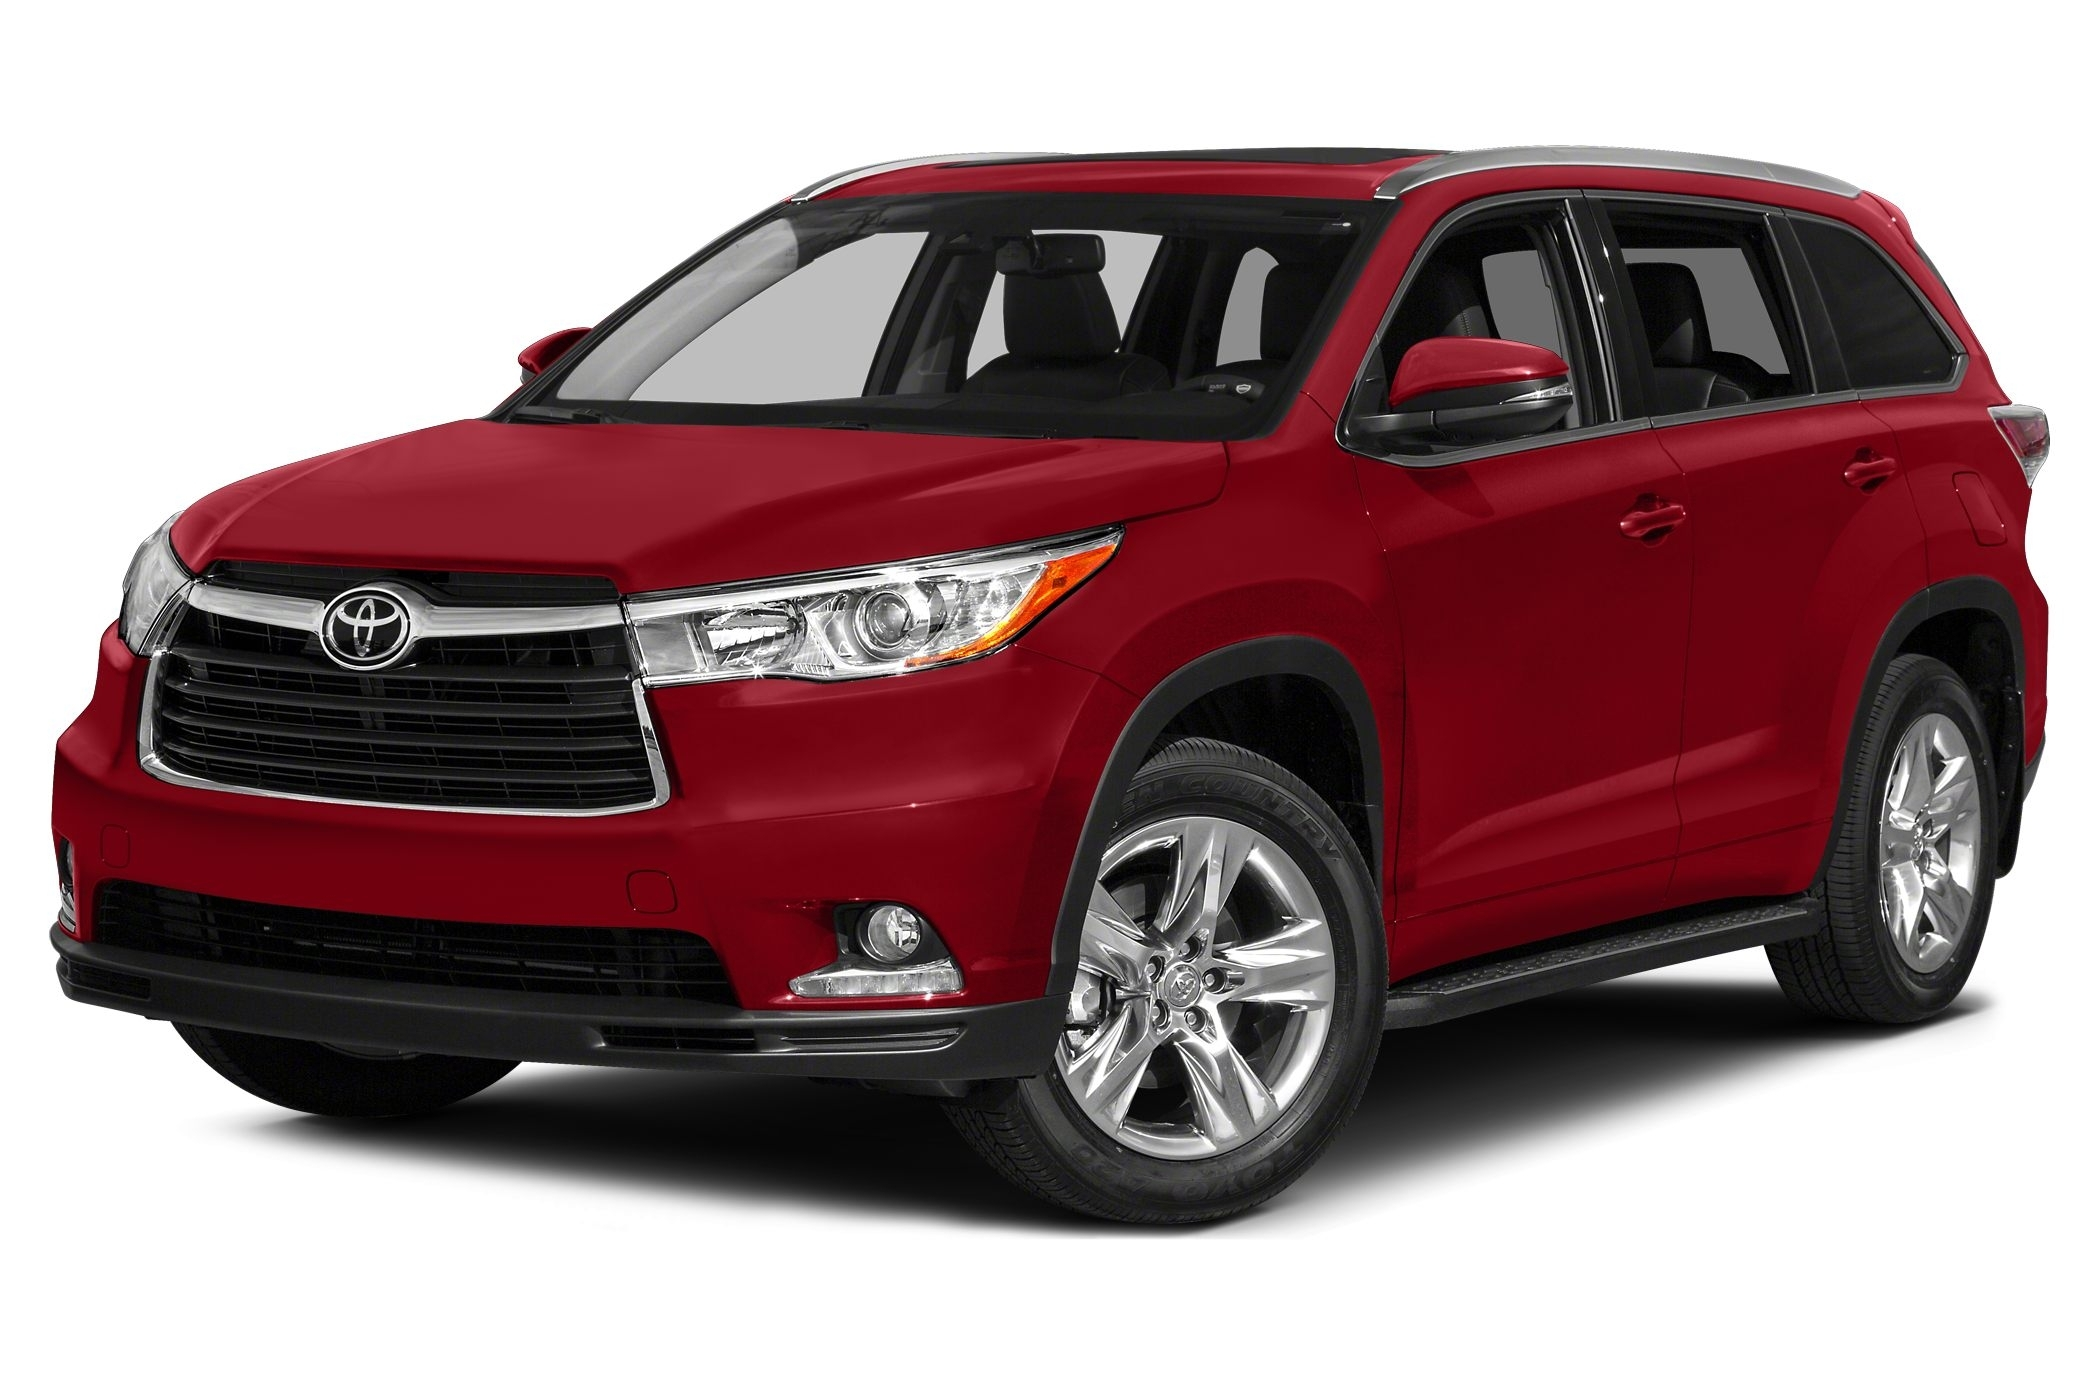 2015 highlander invoice 2015 highlander invoice price invoice template ideas 2100 X 1386